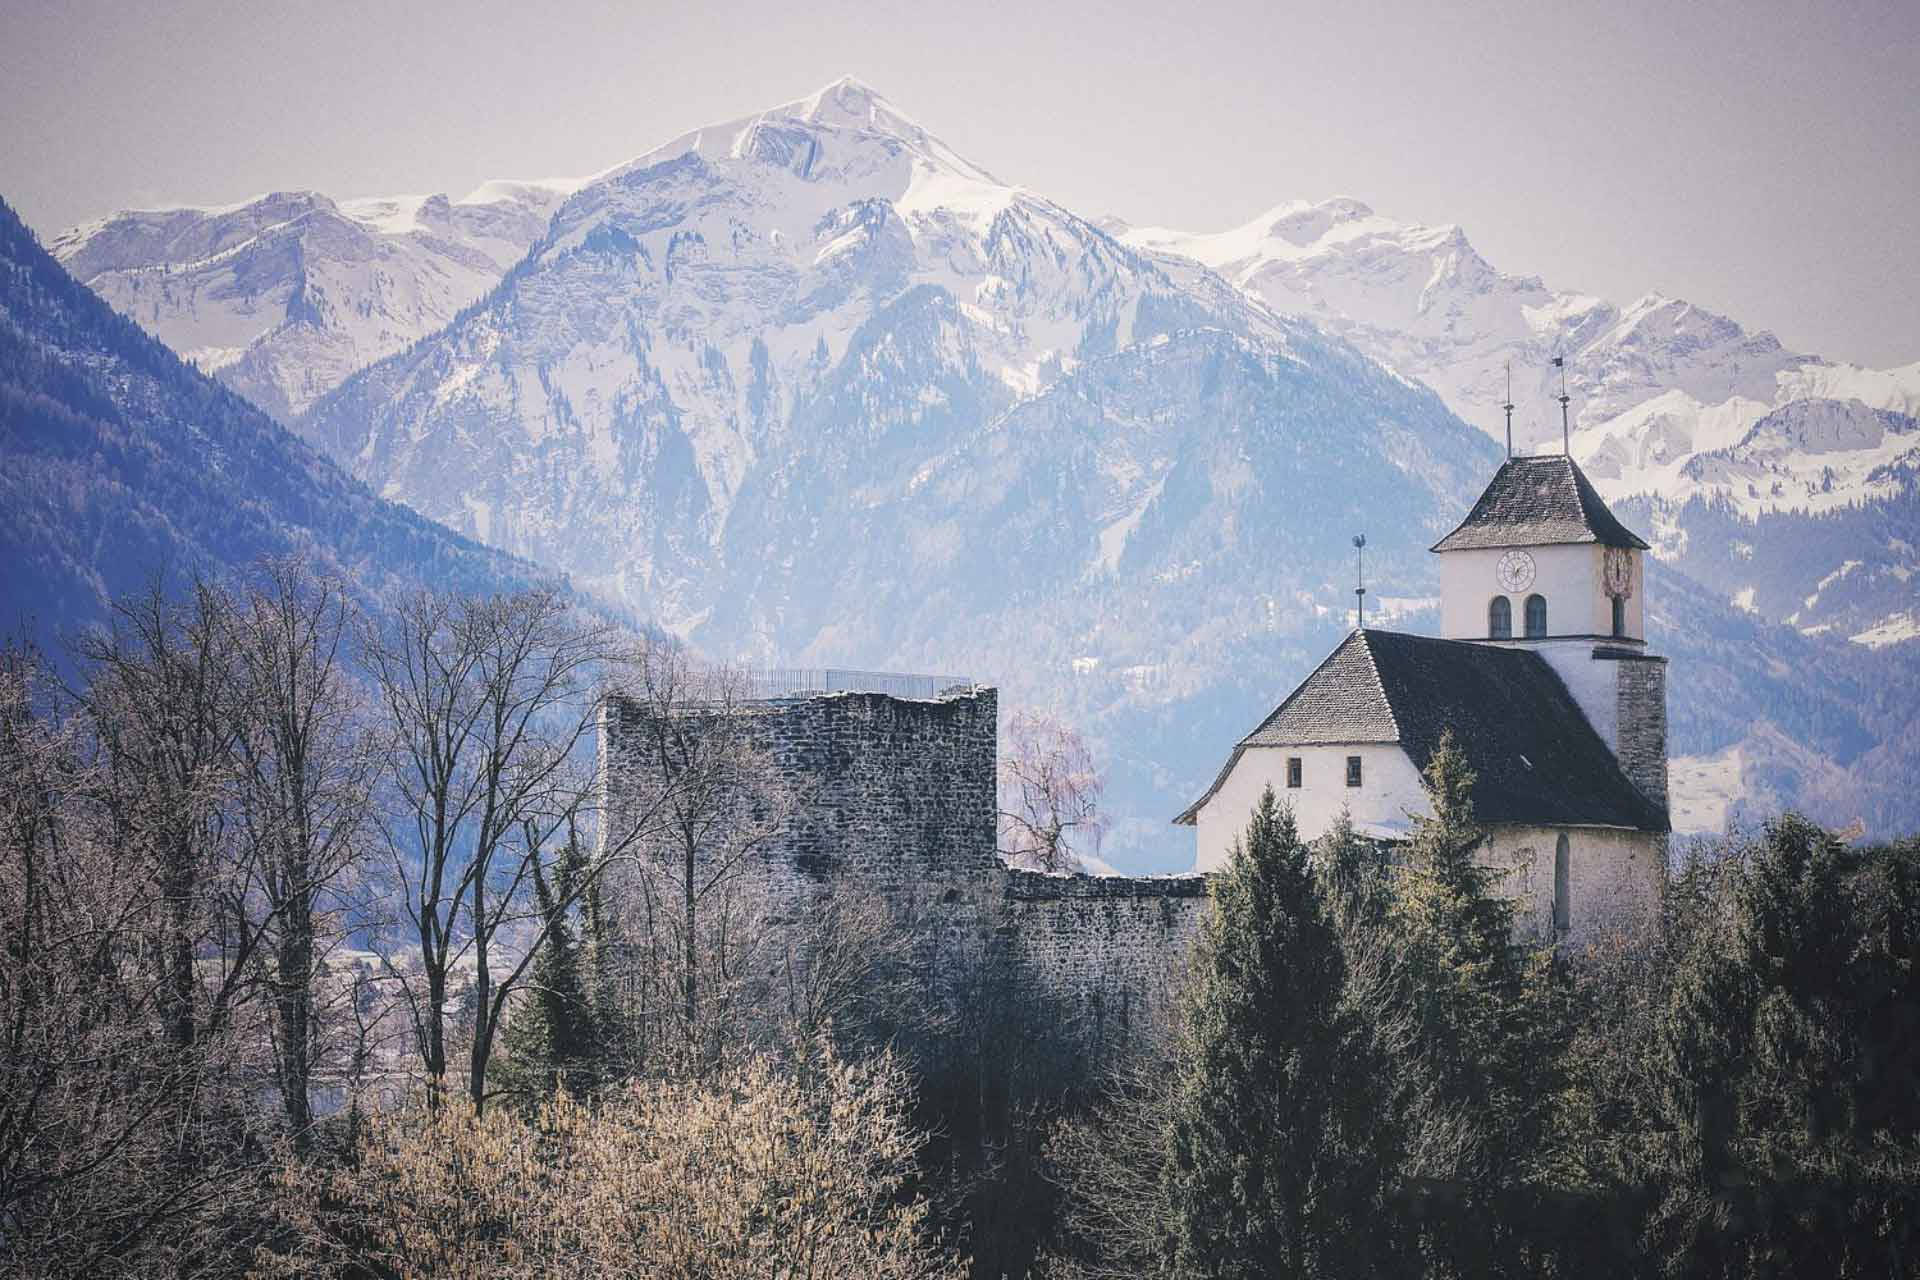 Ringgenberg Church and Castle